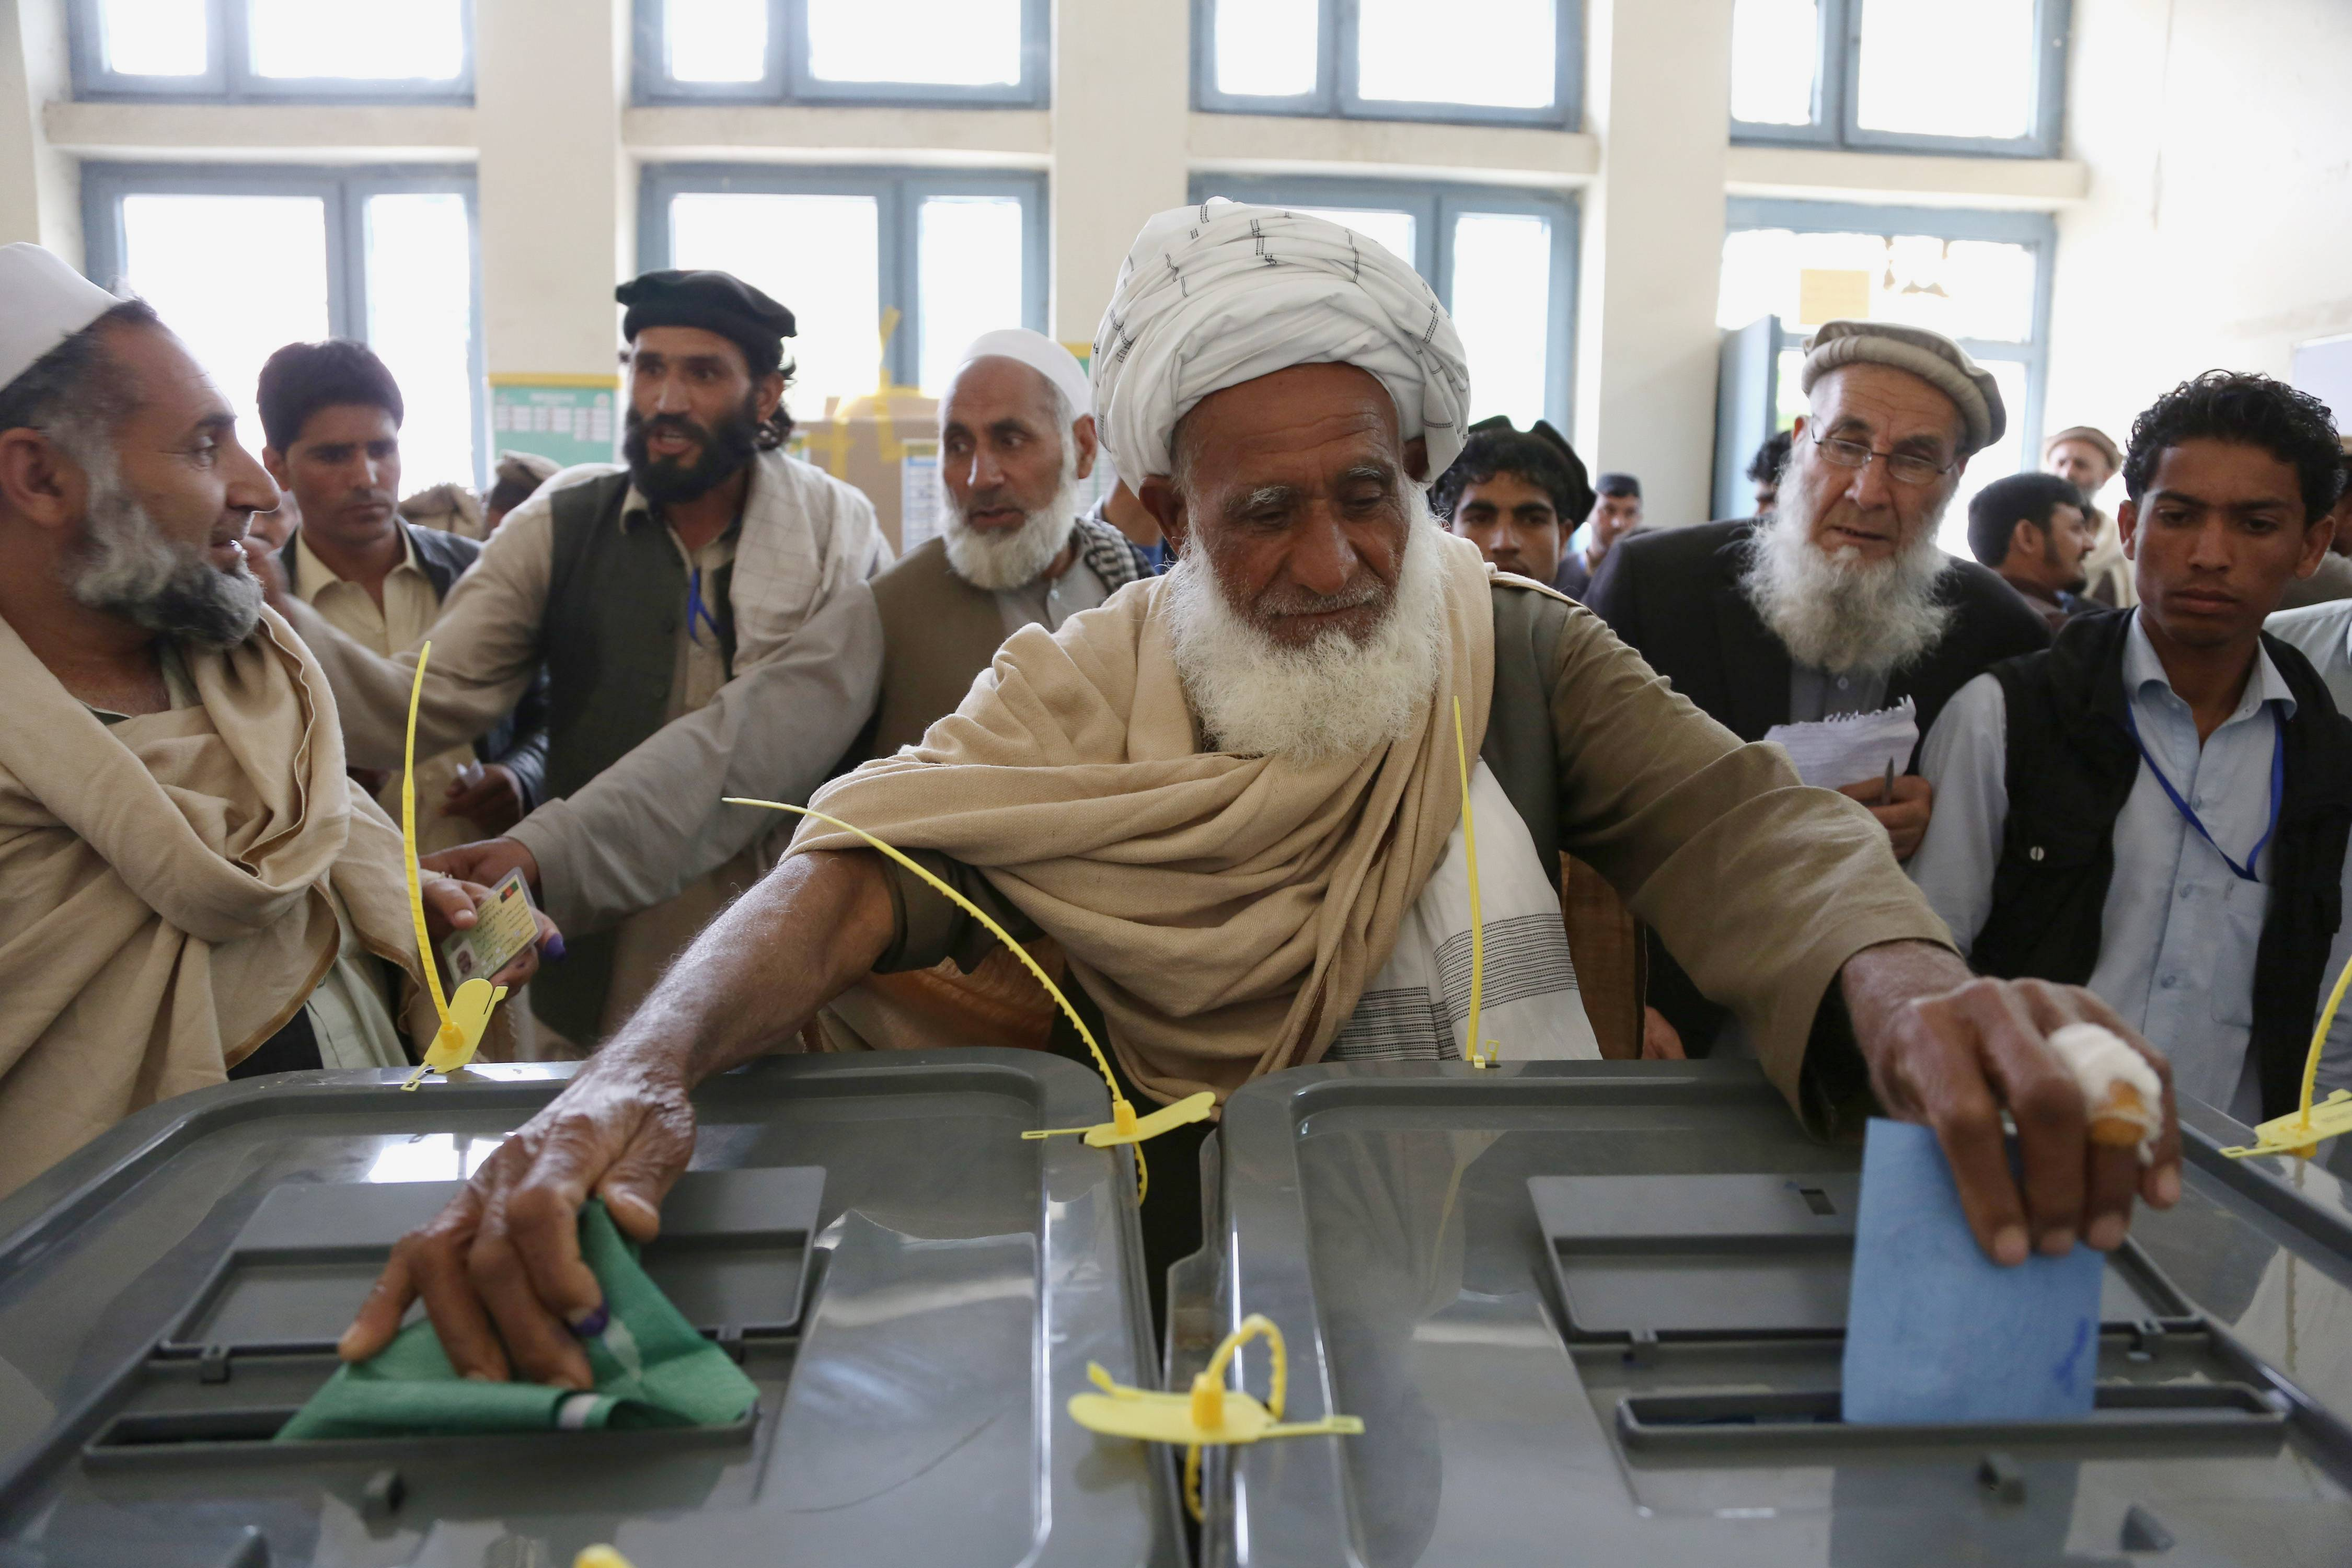 An Afghan man casts his vote at a polling station in Jalalabad, east of Kabul, Afghanistan, Saturday.